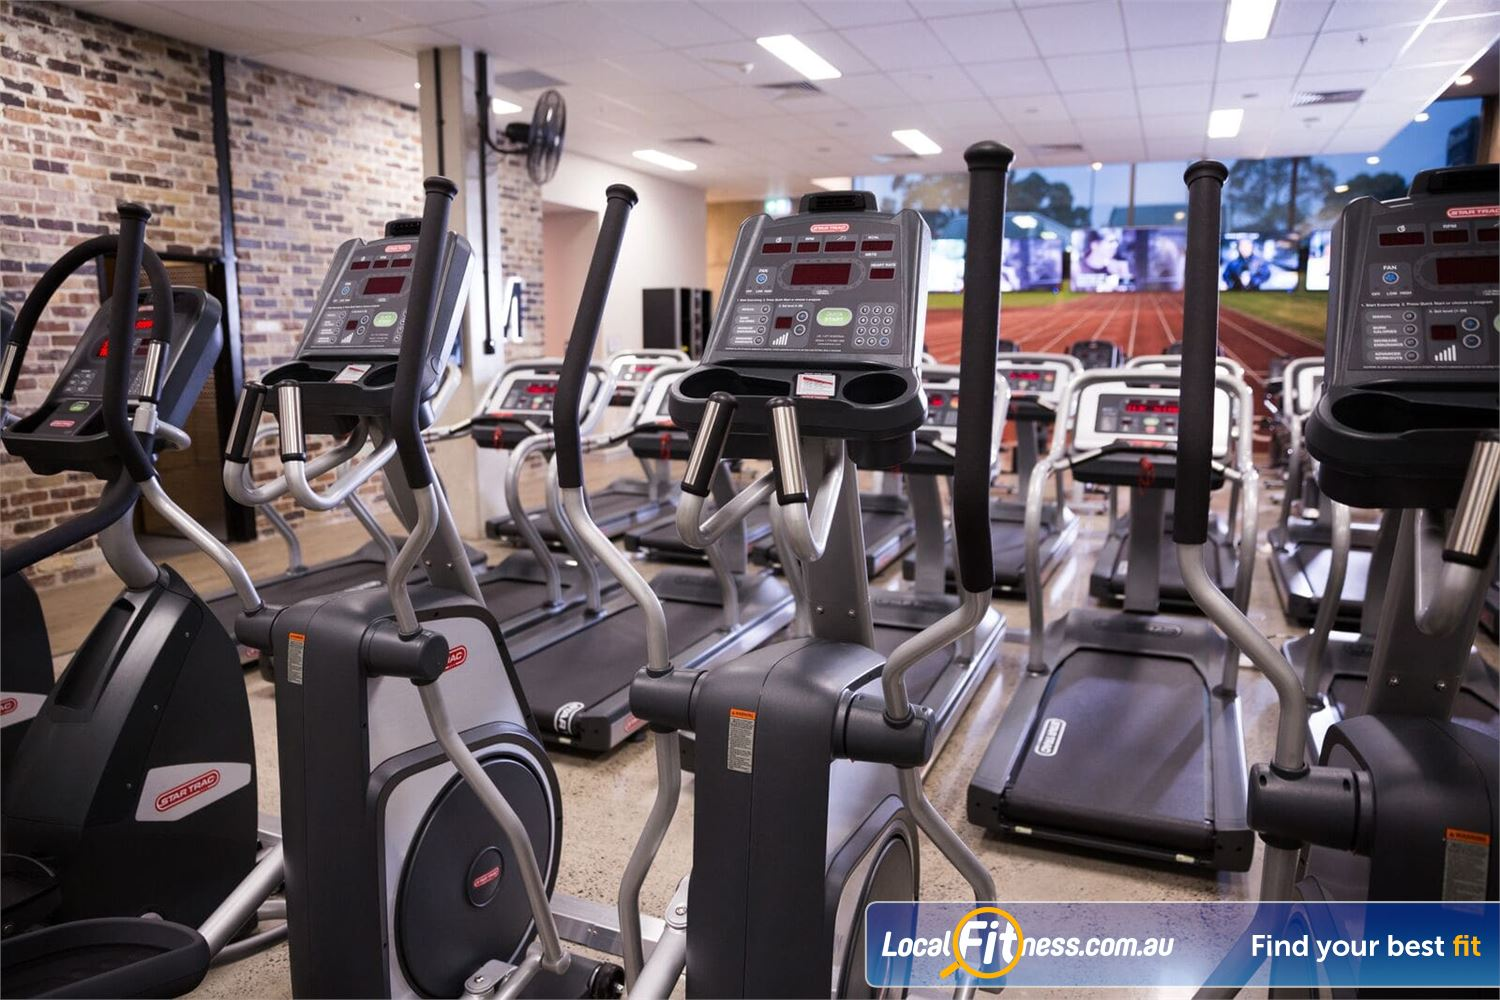 Fit n Fast Near Prairiewood Treadmills, cross trainers, steppers, cycle bikers and more.